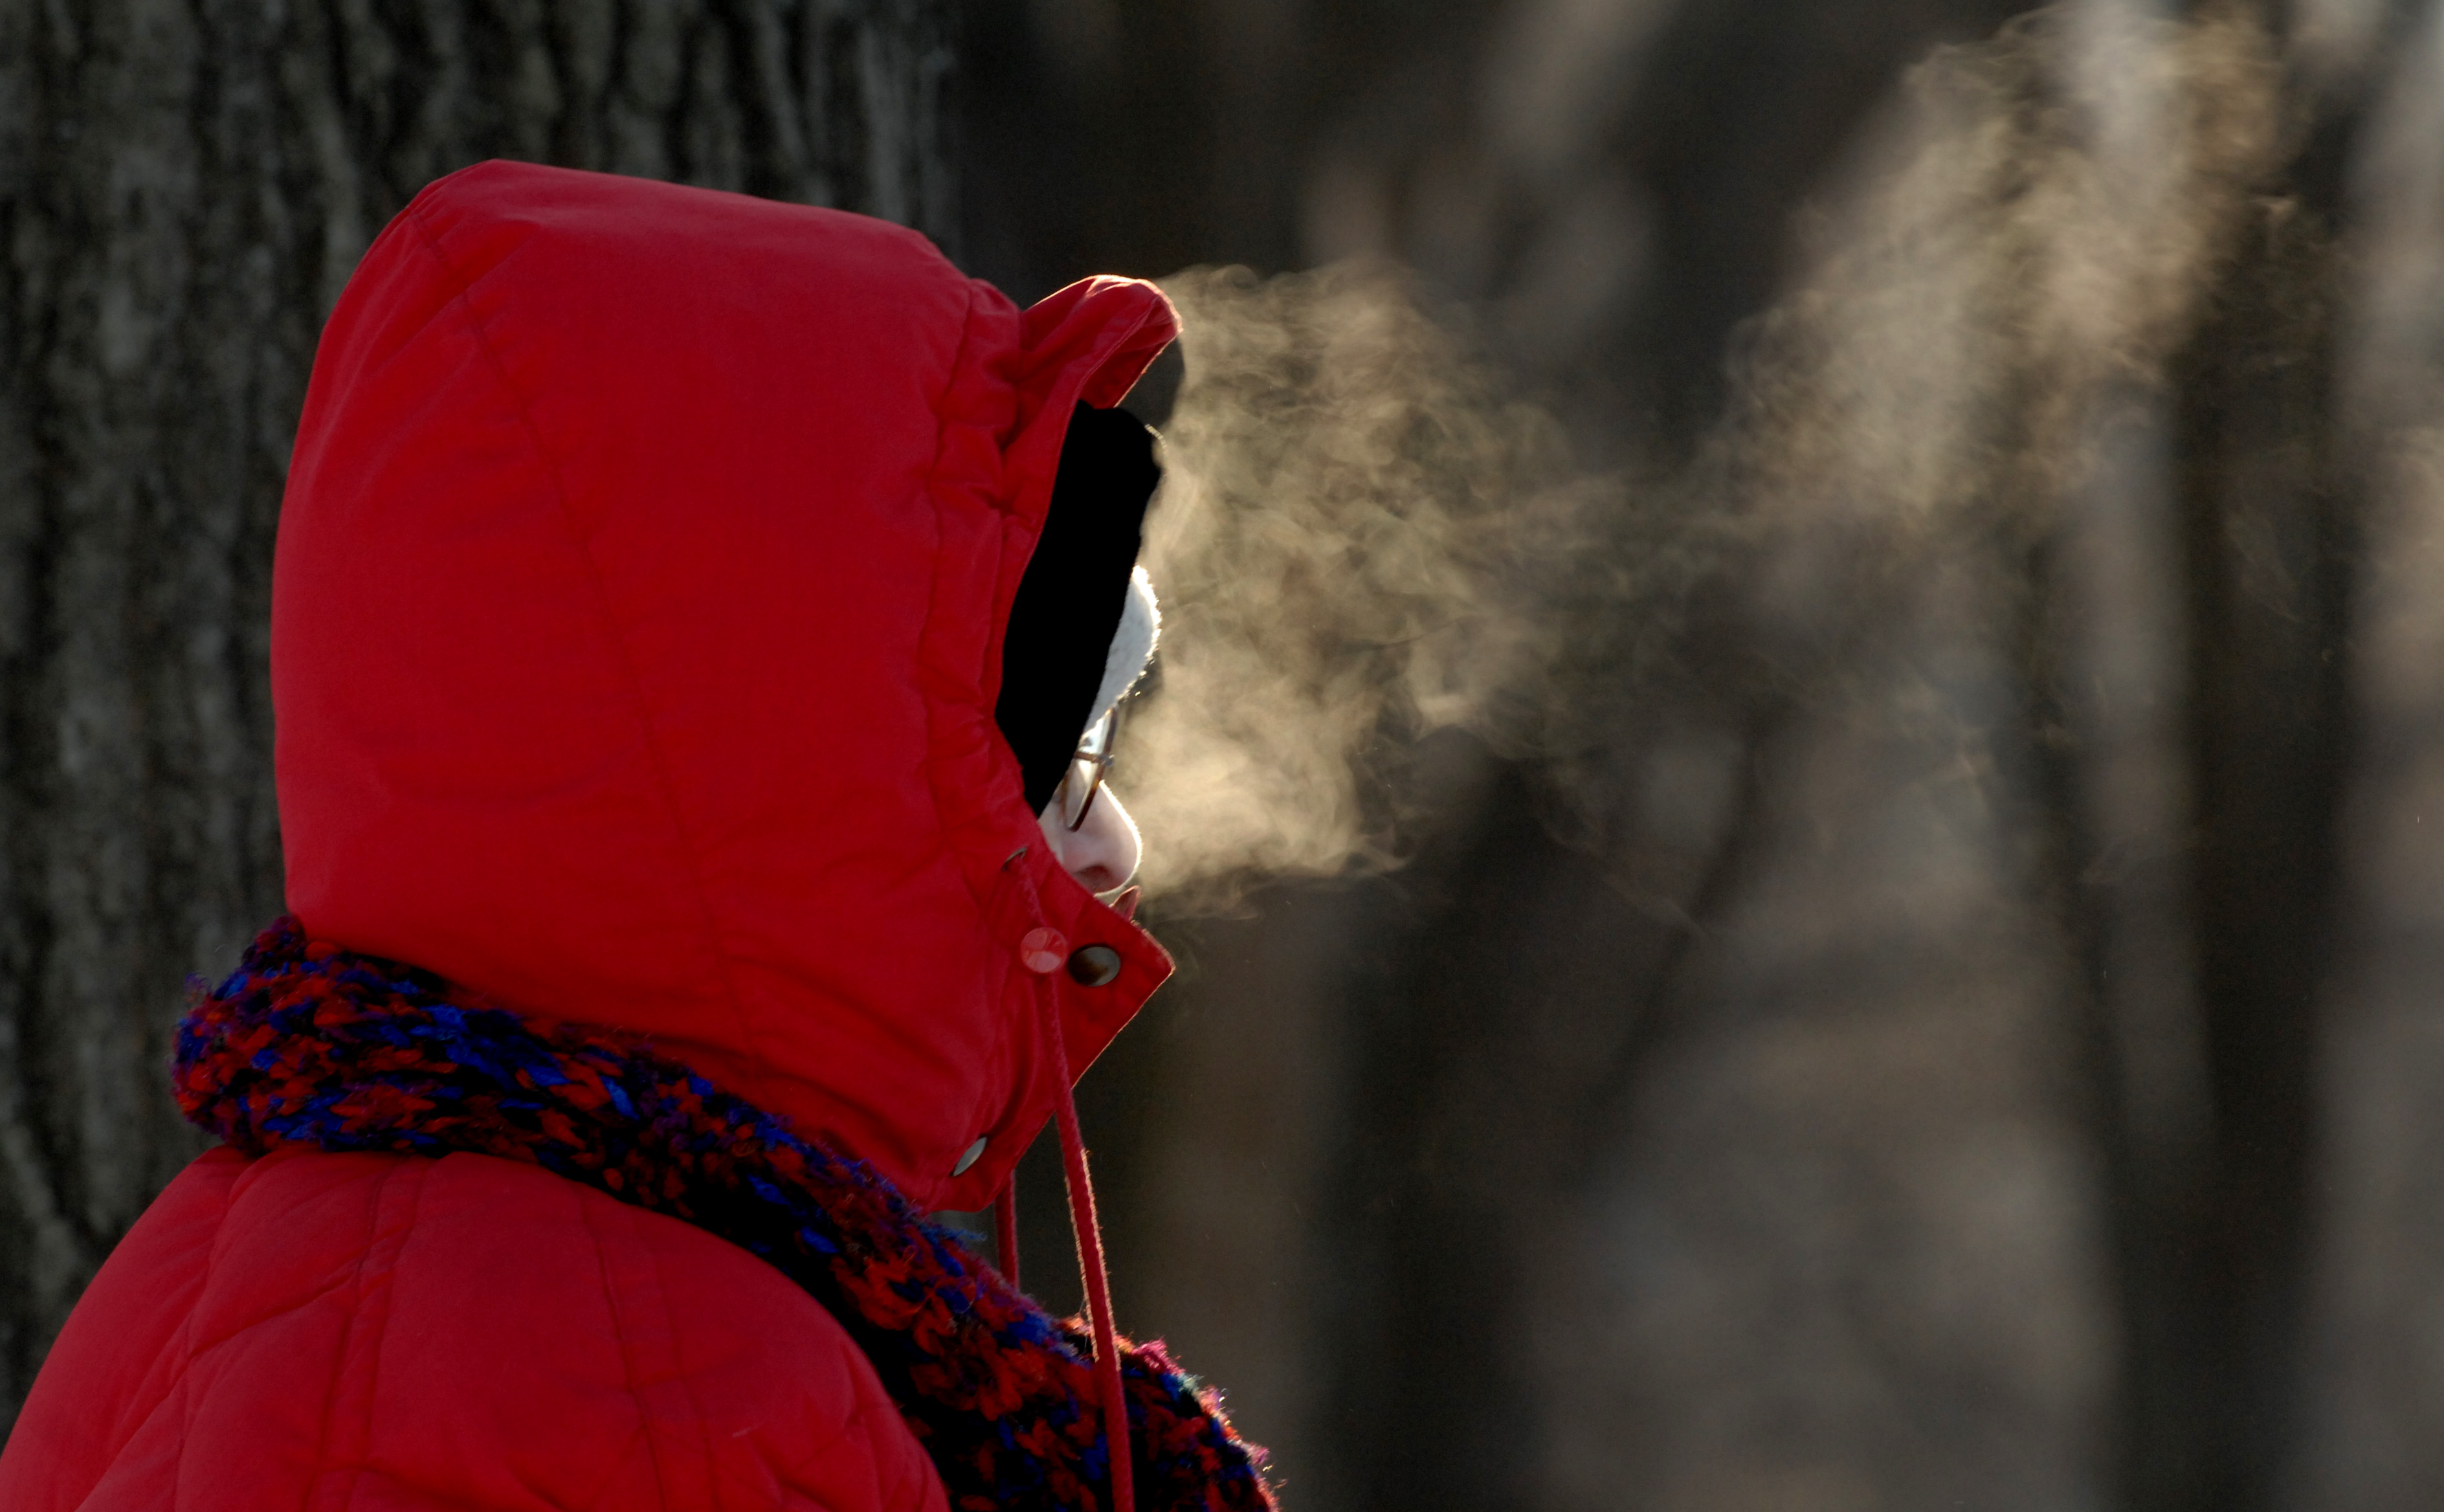 Frigid temperatures prompt burn centers to brace for frostbite